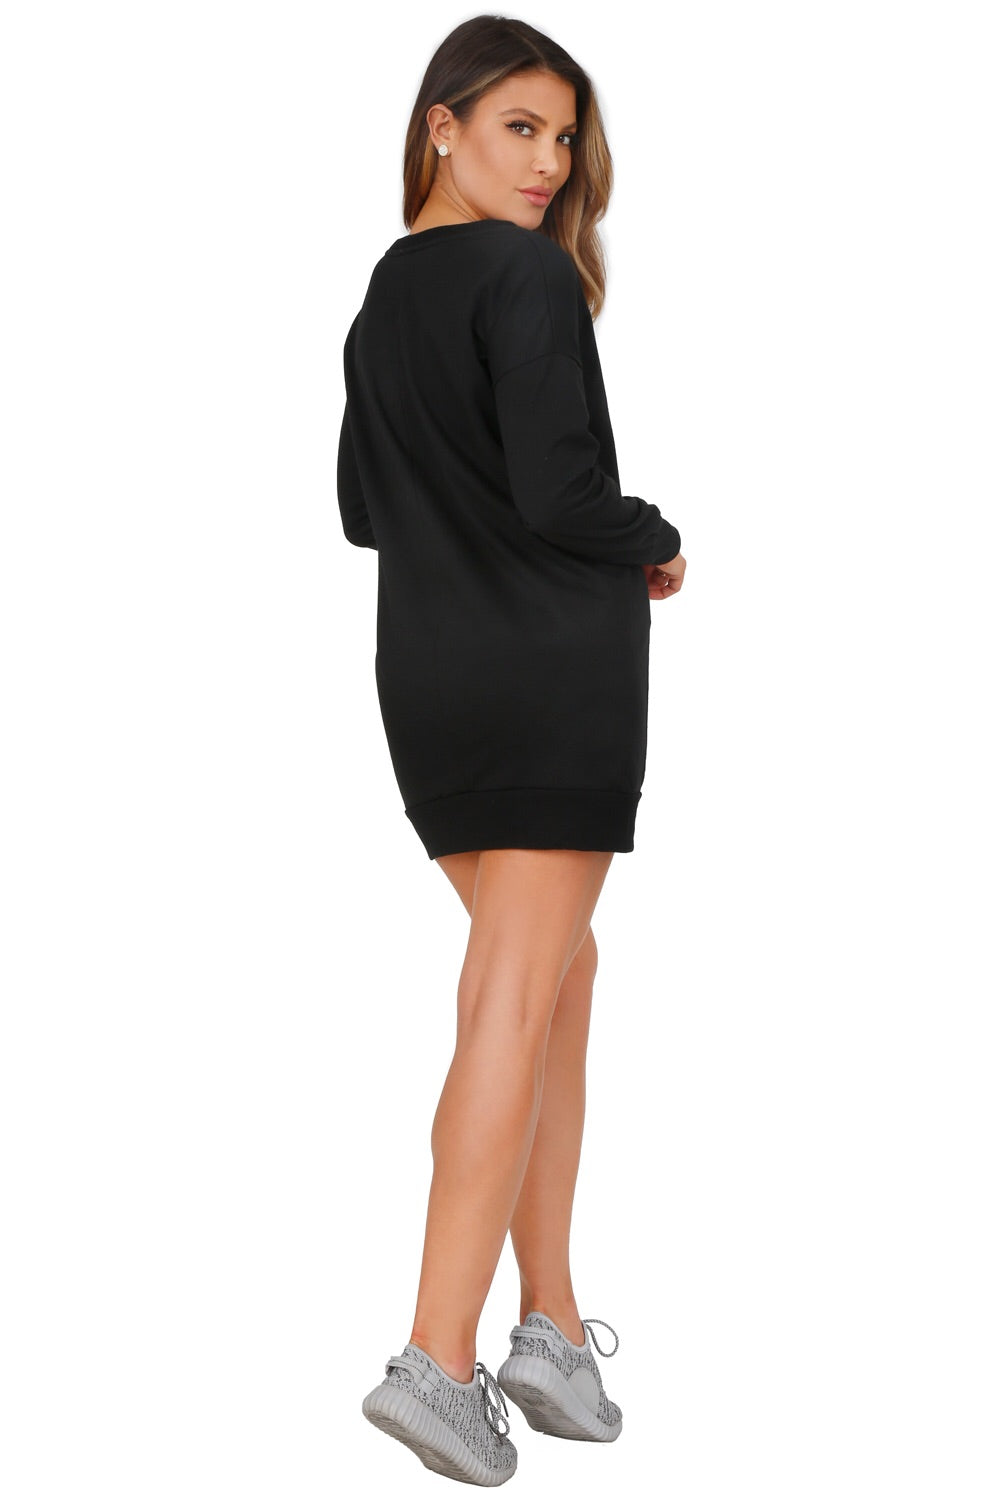 CHARLOTTE SWEATSHIRT DRESS